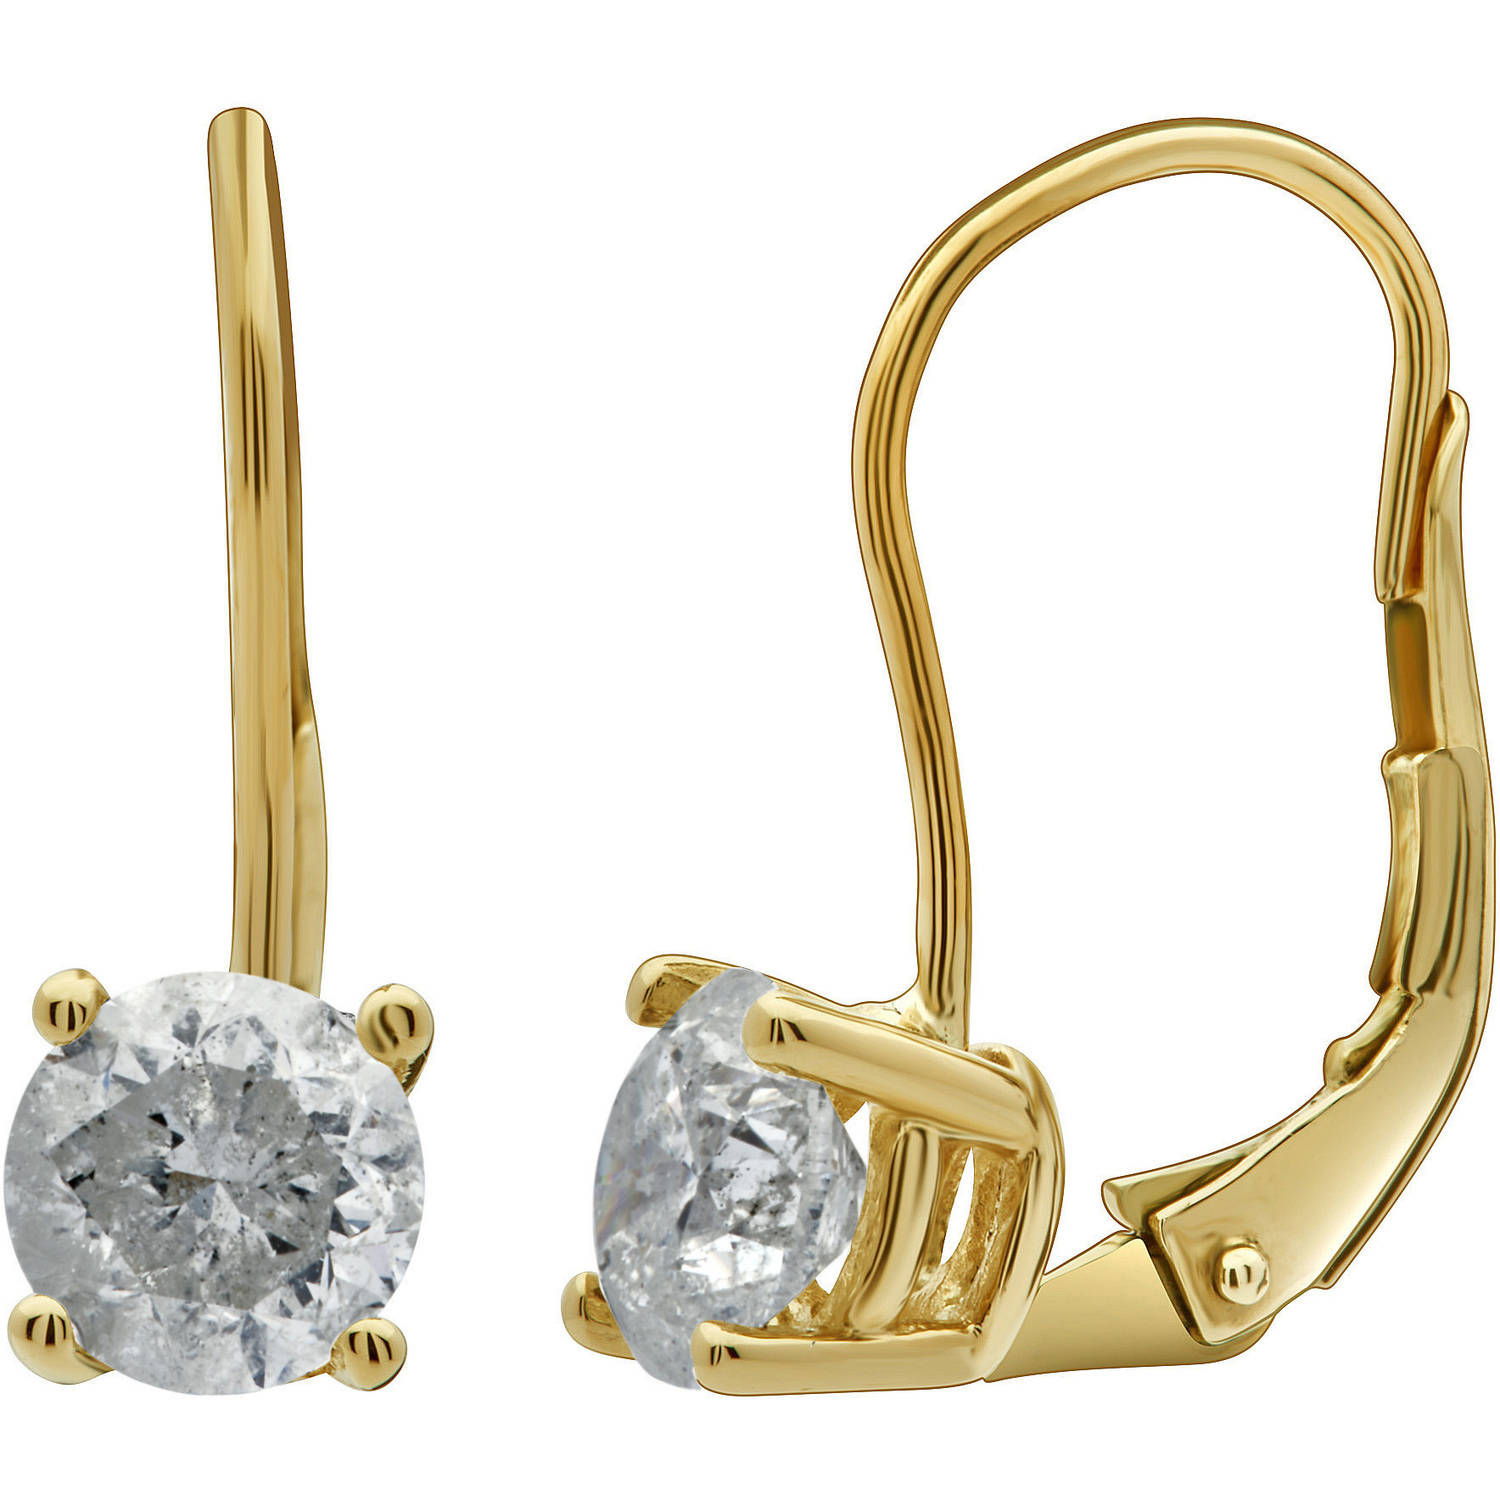 1-1/2 Carat T.W. Round Diamond 14kt Yellow Gold Leverback Stud Earrings, IGL Certified, Comes in a Box